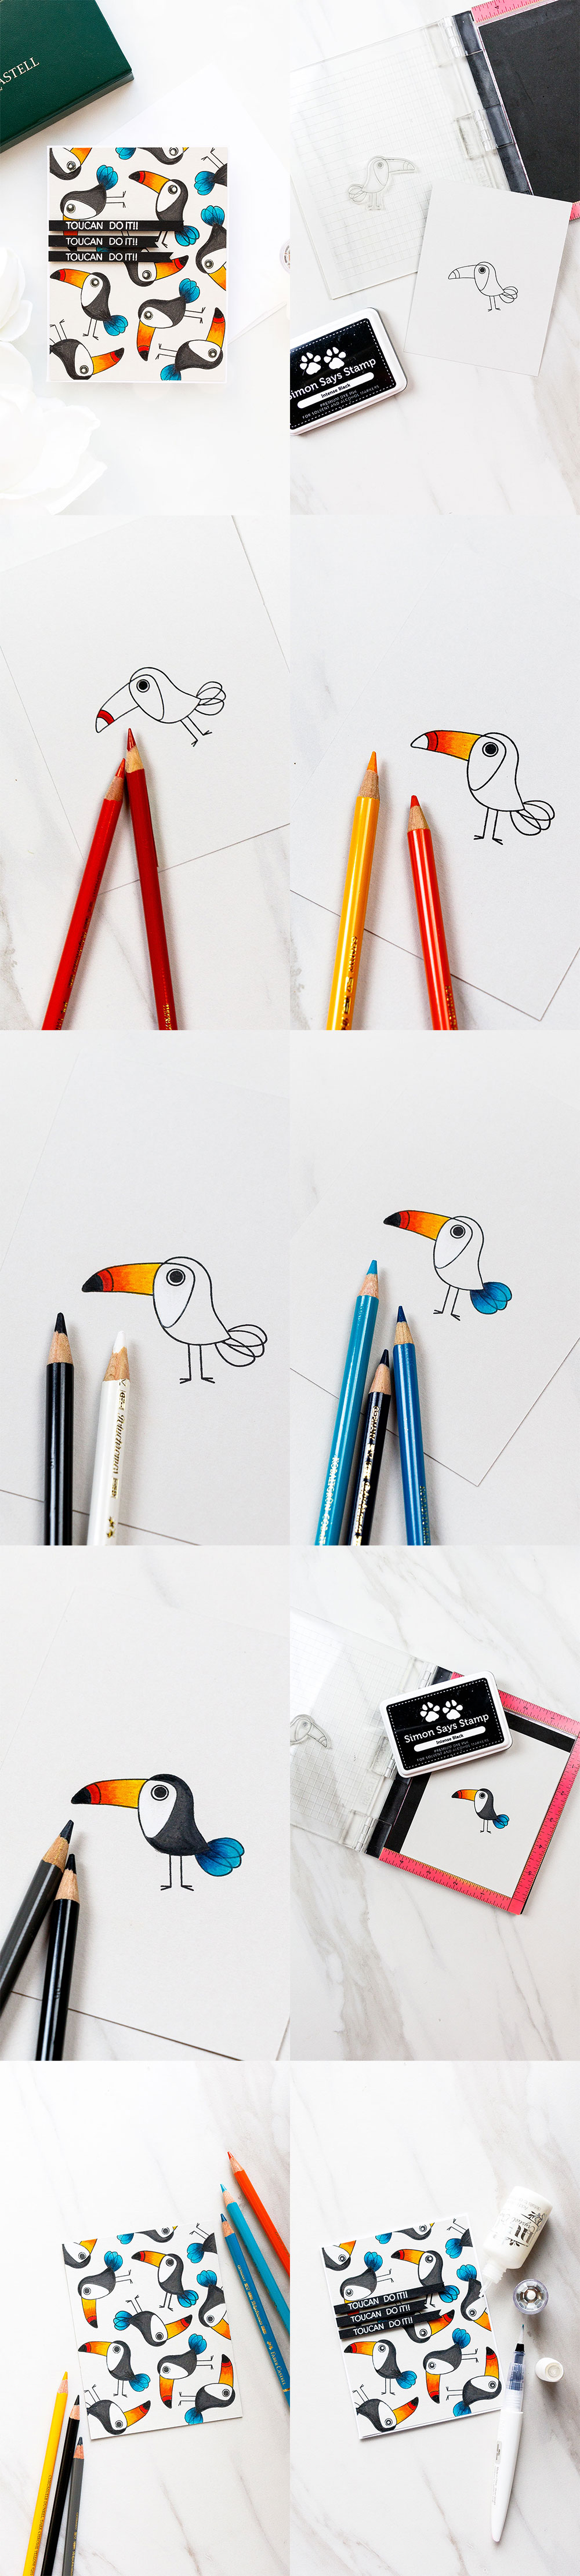 Simon Says Stamp | Toucan Do It! Pencil Colored Toucan Card. Photo Tutorial by Yana Smakula using ENCOURAGING ANIMALS SSS101747 stamp set #simonsaysstamp #sss #stamping #encouragingcard #polychromos #adultcoloring #stampedpattern